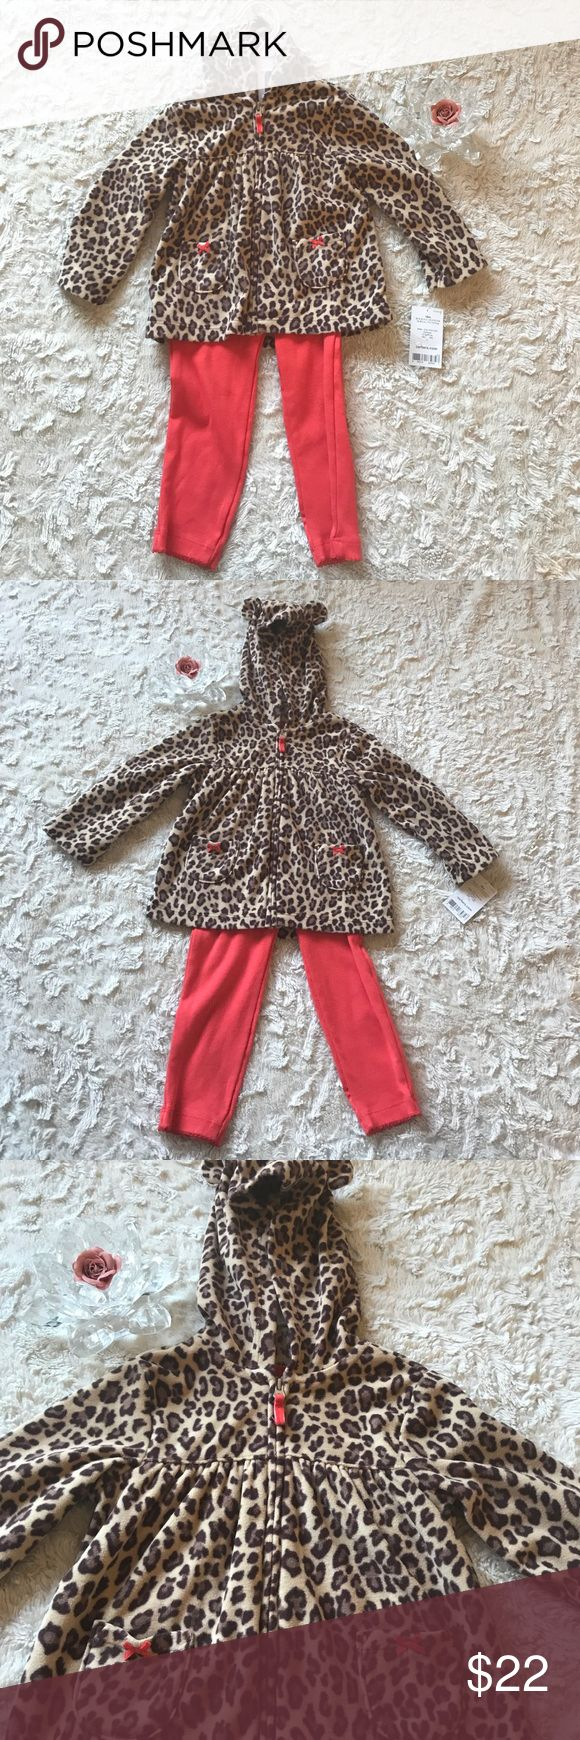 Carter's 2 Pcs Girls Micro Set Sz 18 Months New with tags  2 pieces set  Coral elastic pull on leggings and Fleecy animal print hoodie jacket with animal ears 2 pockets. Full zip. Stylish & warm! Retail Price $32.  Please check my other listing i do combine shipping   Location : Winter Box Carter's Matching Sets